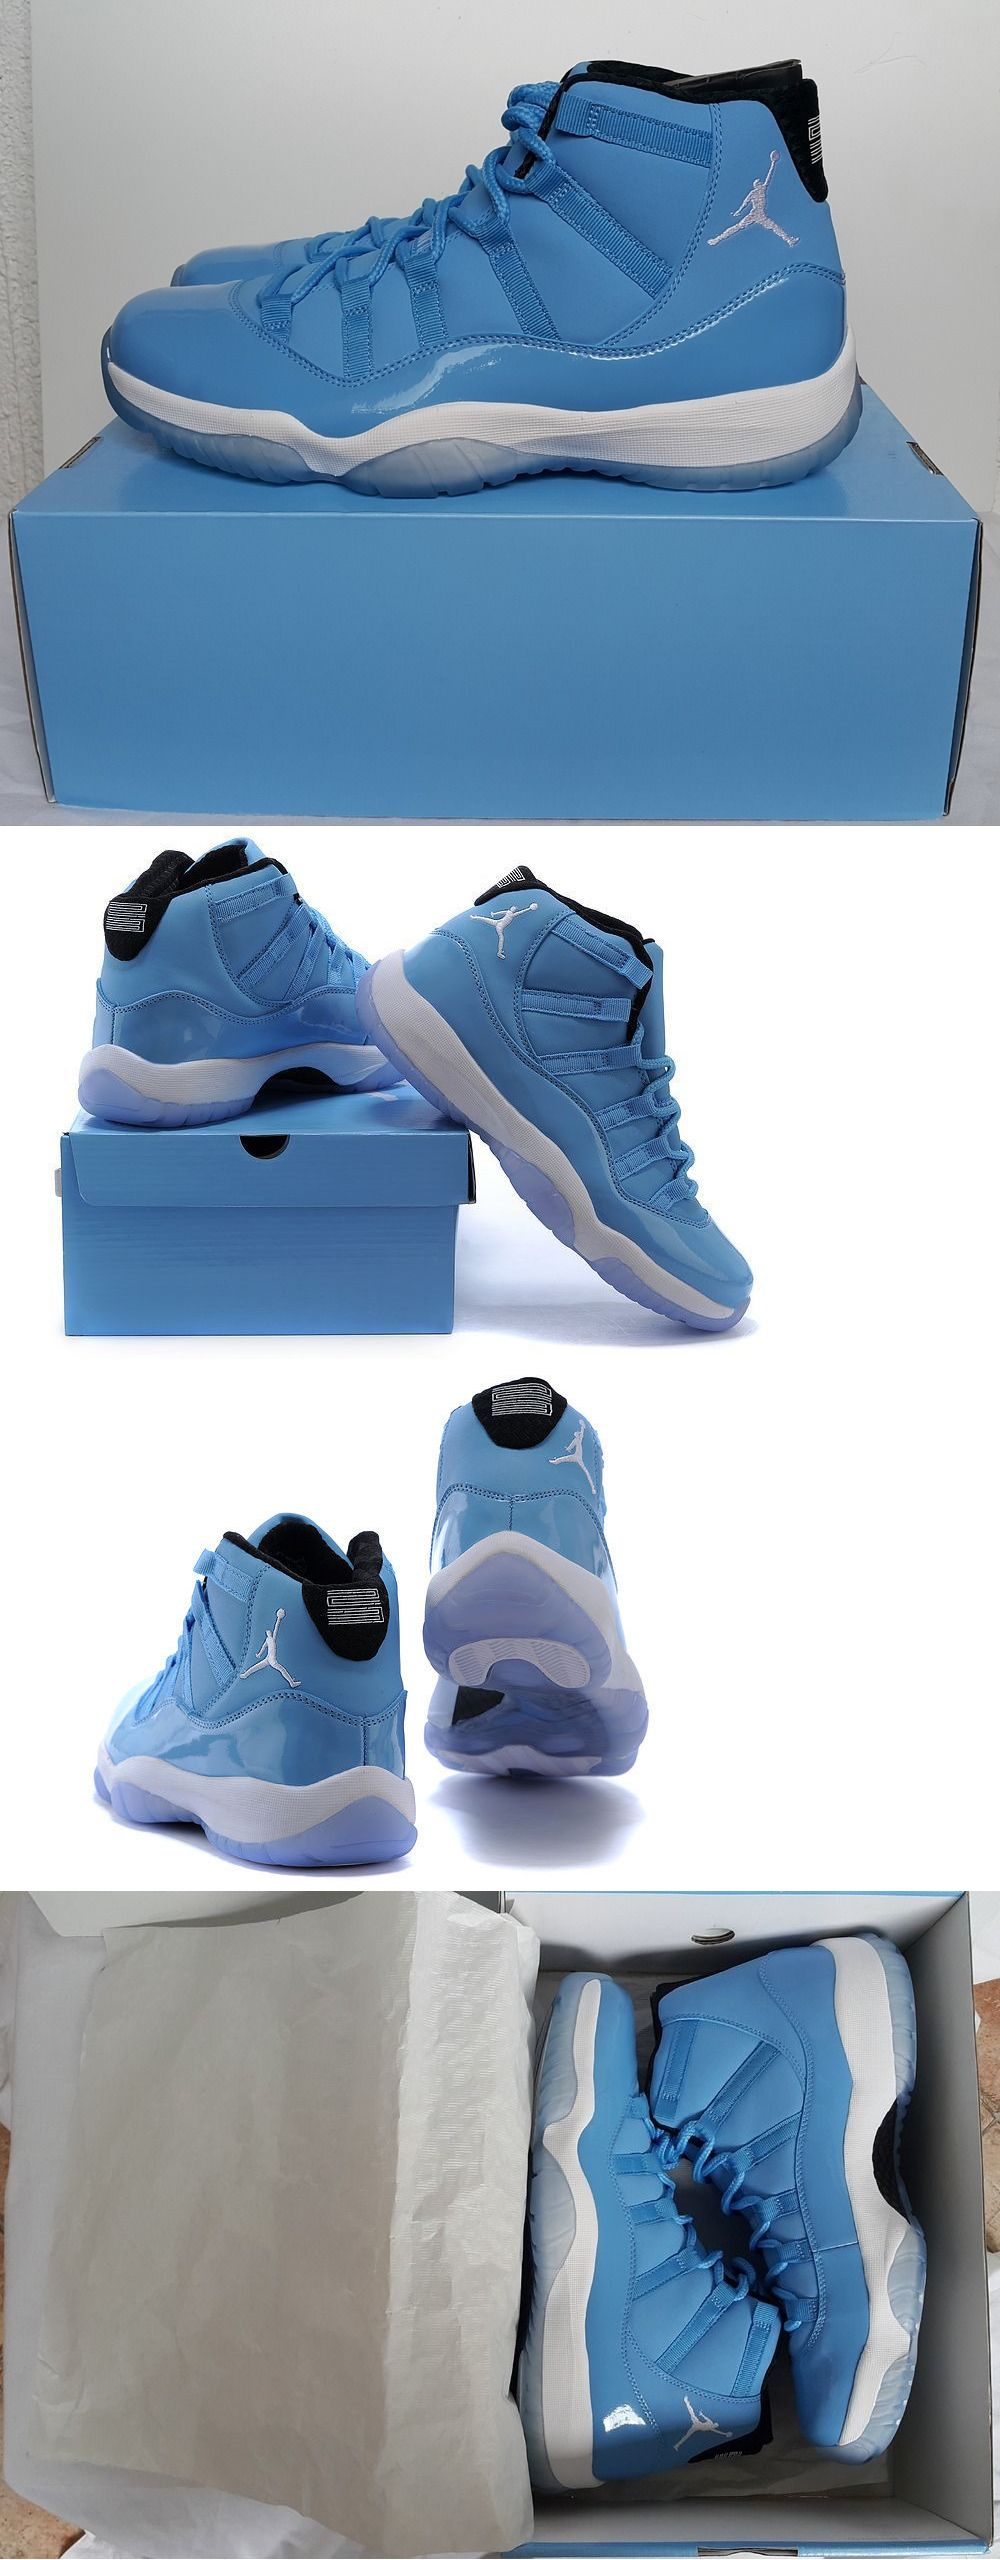 promo code 35aed d0b0c ... Men 158971 Nike Air Jordan 11 Xi Retro Pantone - Gift Of Flight Bnib,  ...